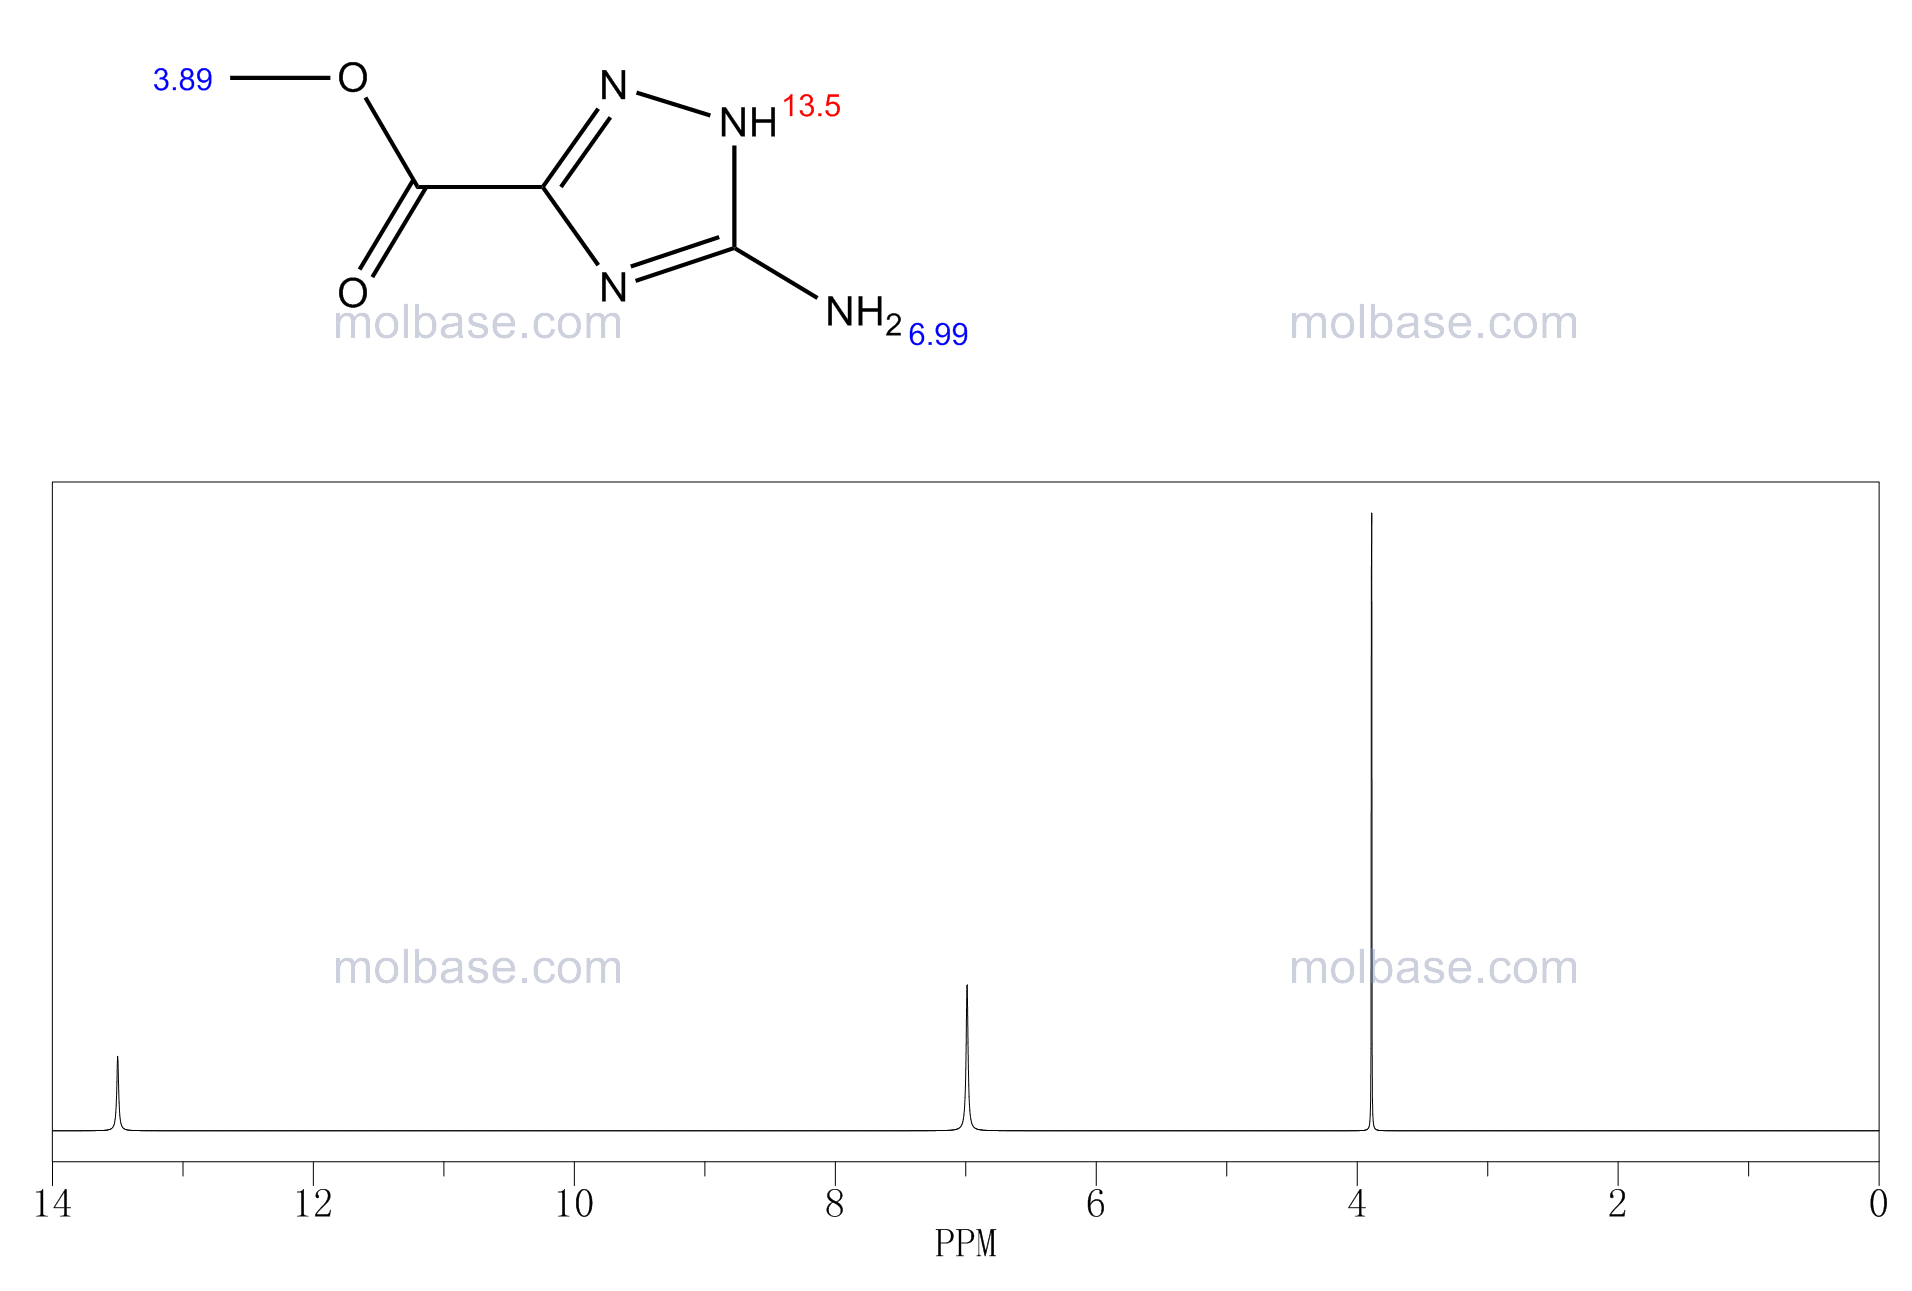 Methyl 5-Amino-1H-1,2,4-Triazole-3-Carboxylate NMR spectra analysis, Chemical CAS NO. 3641-14-3 NMR spectral analysis, Methyl 5-Amino-1H-1,2,4-Triazole-3-Carboxylate C-NMR spectrum